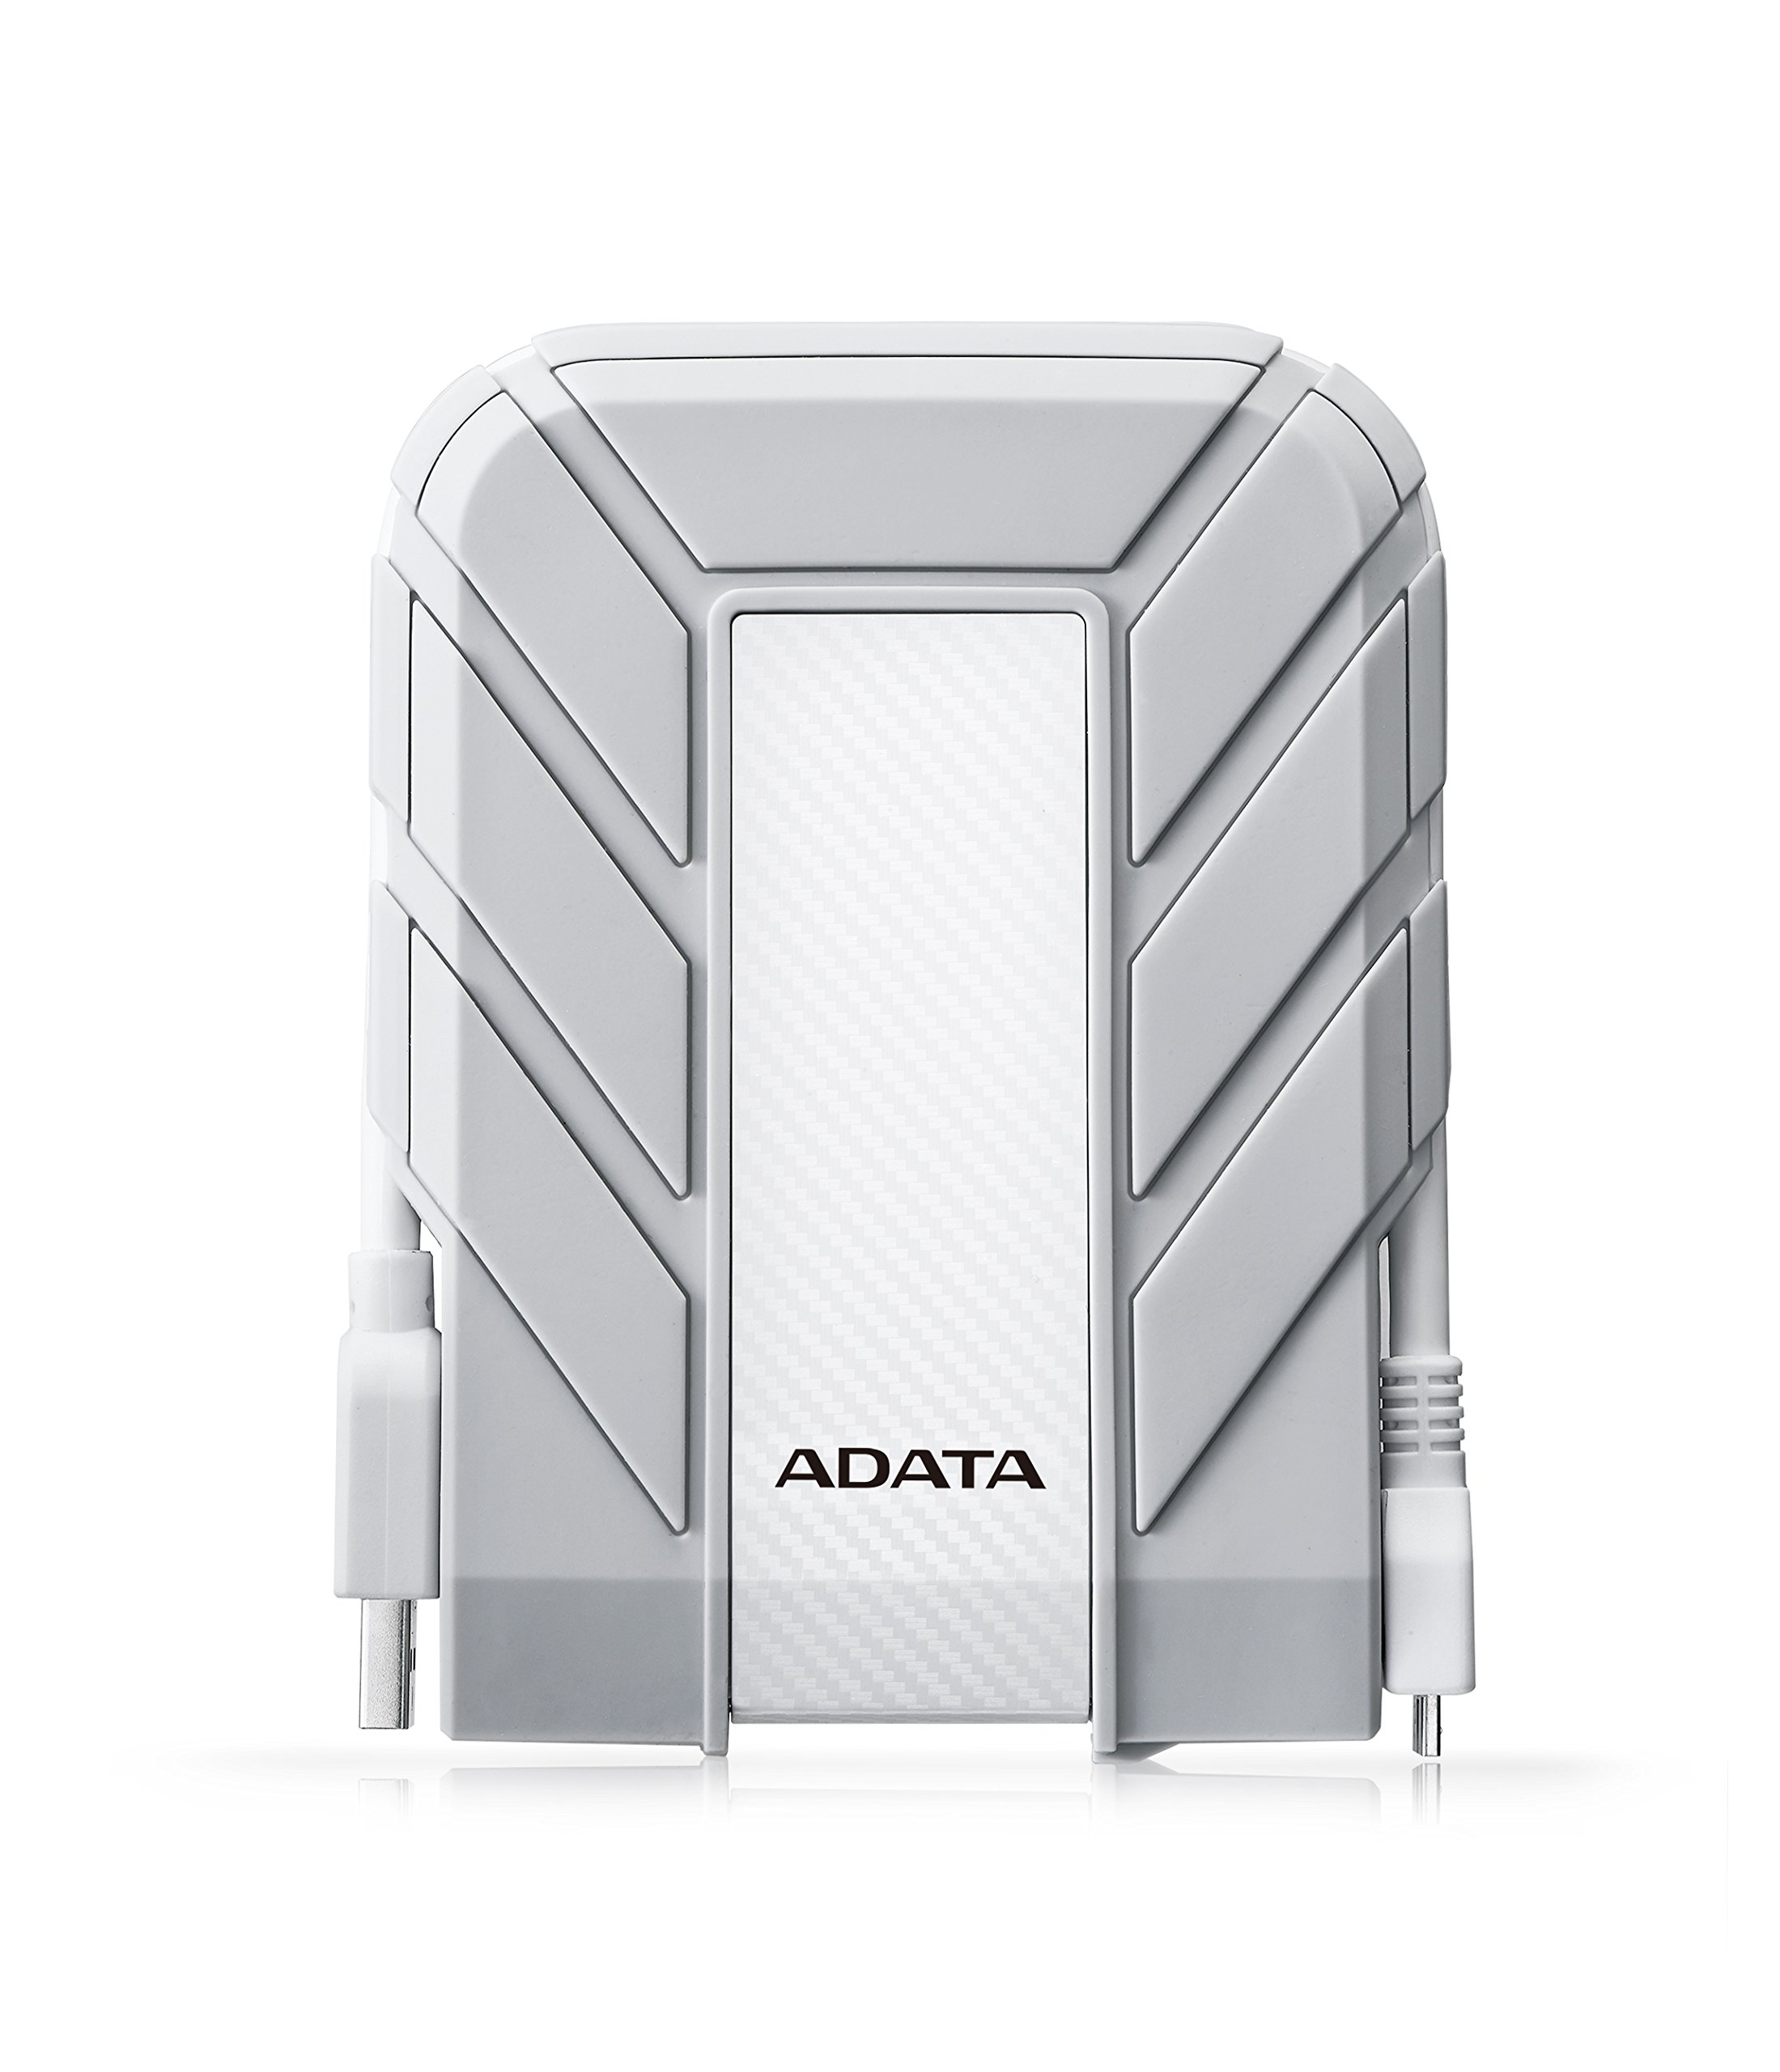 ADATA HD710A 2TB USB 3.0 Waterproof/ Dustproof/ Shock-Resistant Exlusive for Mac External Hard Drive, White (AHD710A-2TU3-CWH) by ADATA (Image #4)